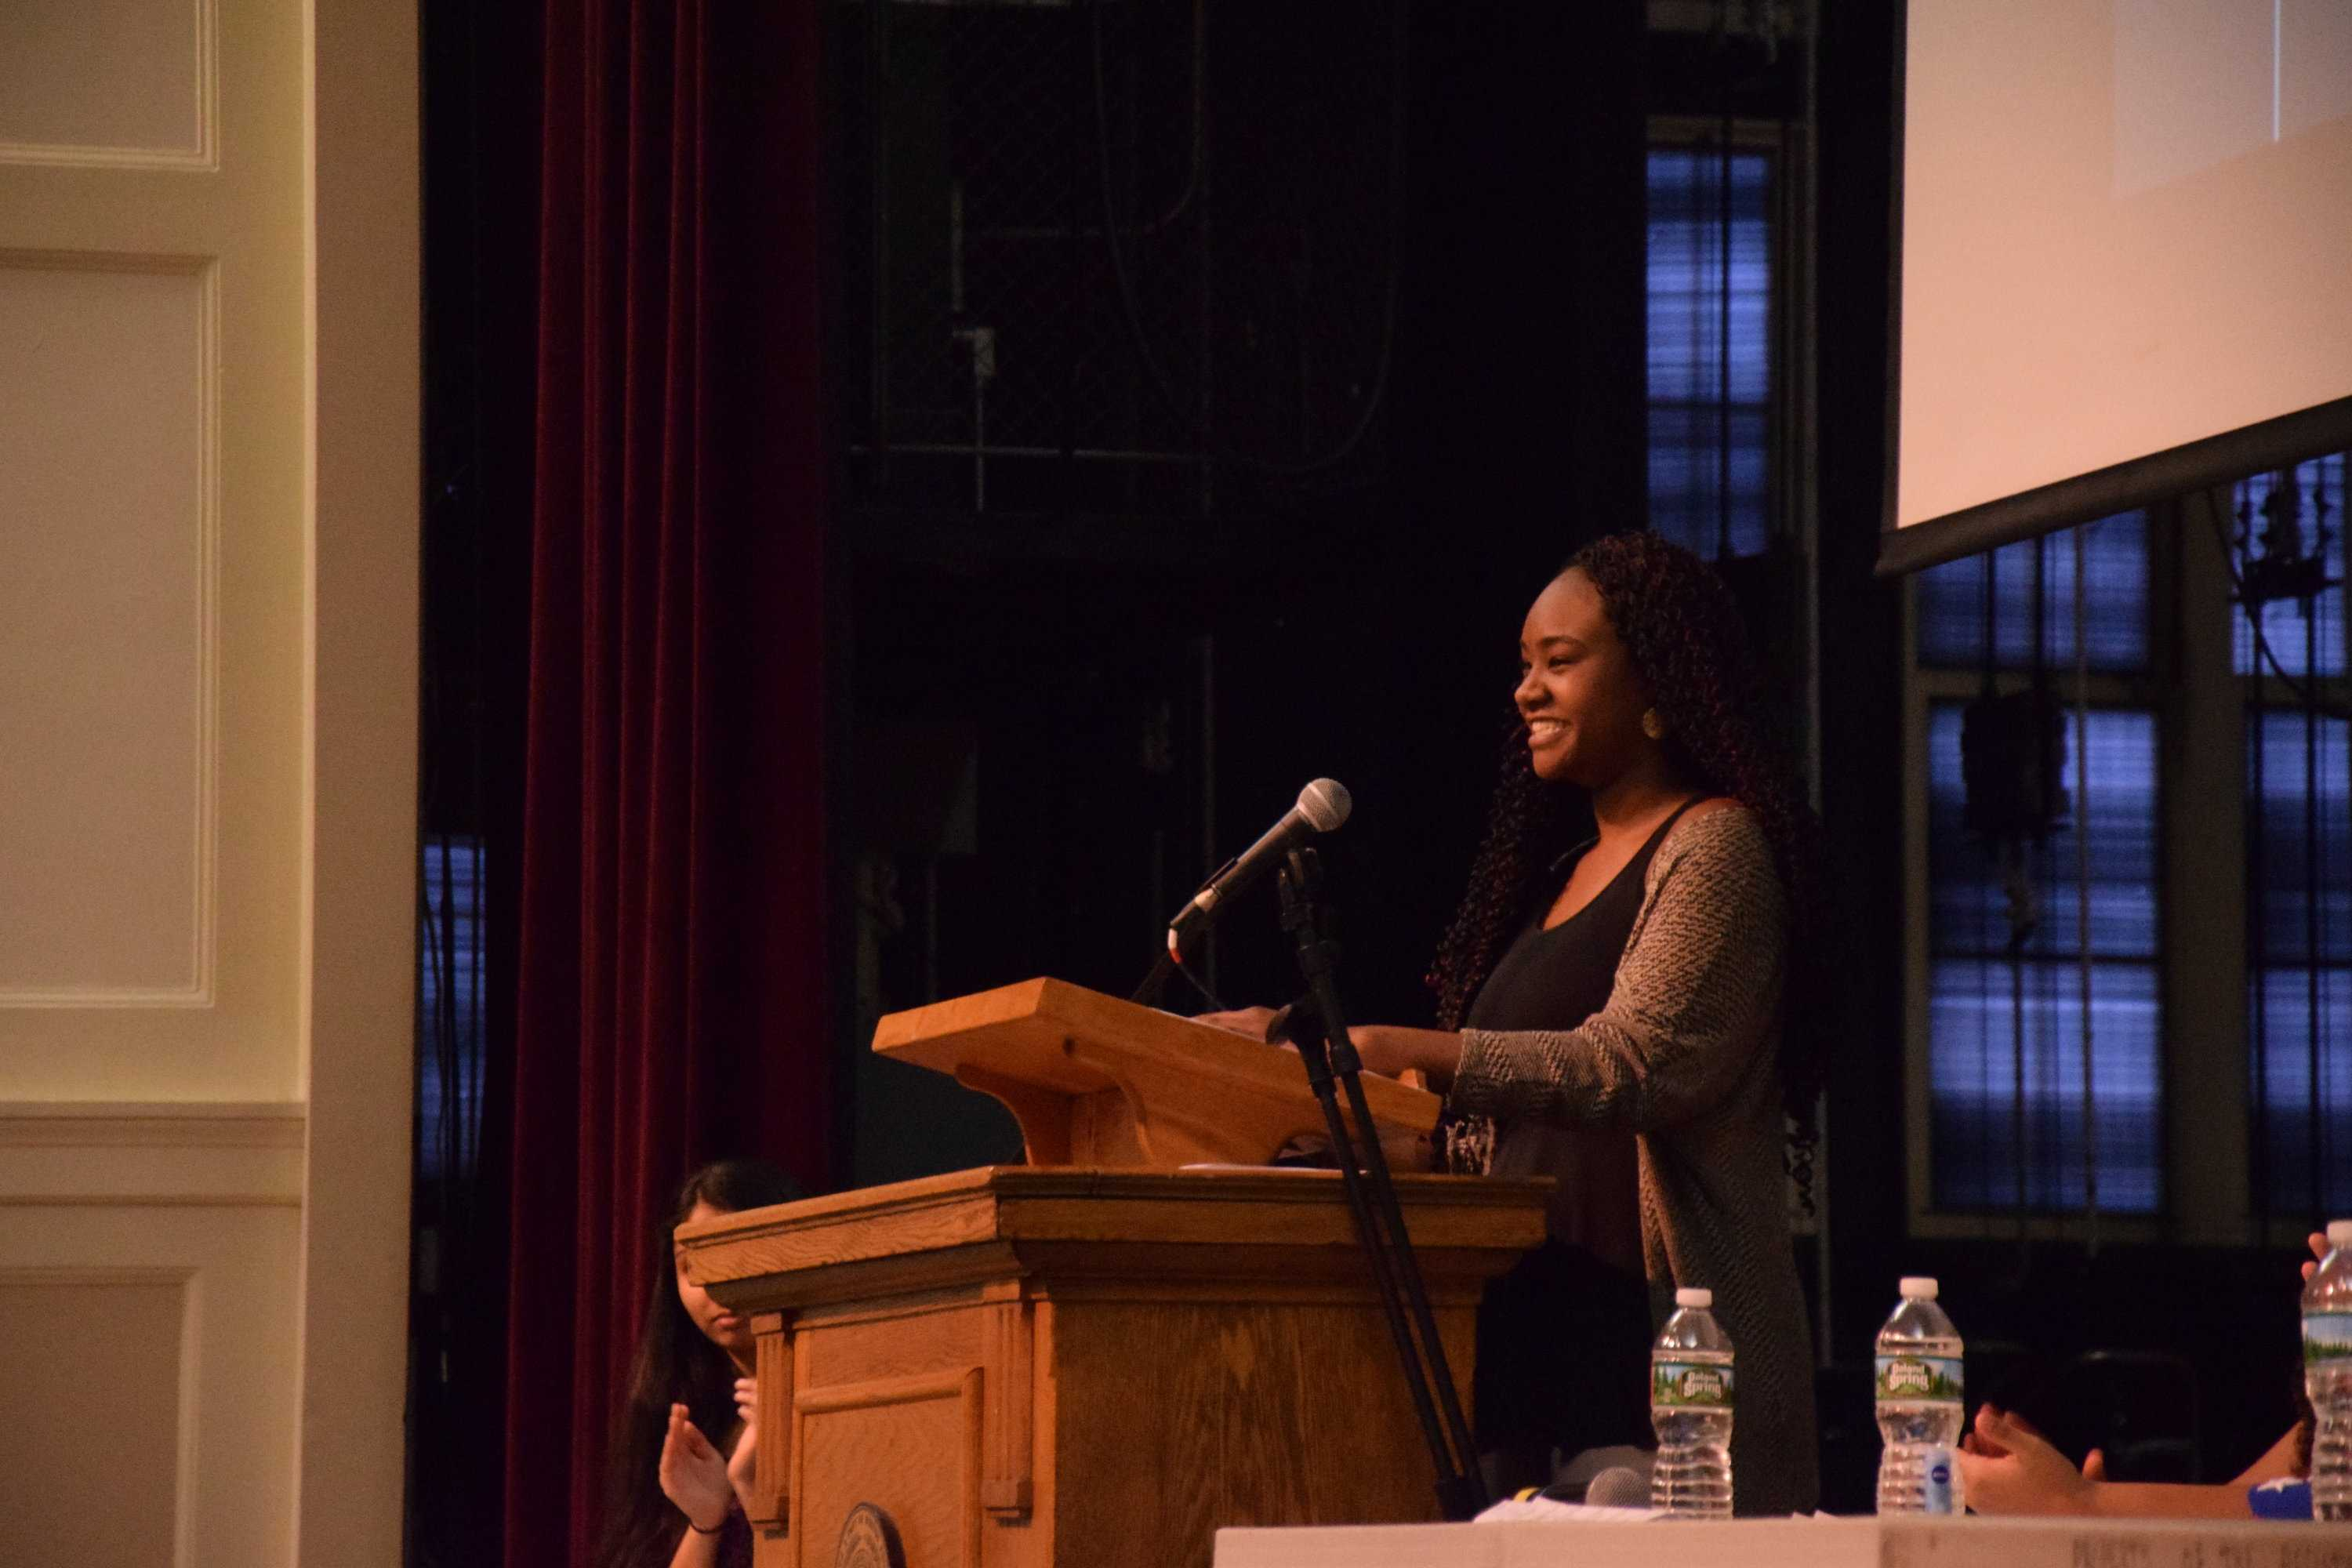 Junior Ndanu Mutisya, a Kenyan-American, recited a list of her pet peeves about race, ranging from people automatically consulting her on racial issues to being the only student of color in her Advanced Placement U.S. History class. Mutisya was one of many speakers at the assembly.